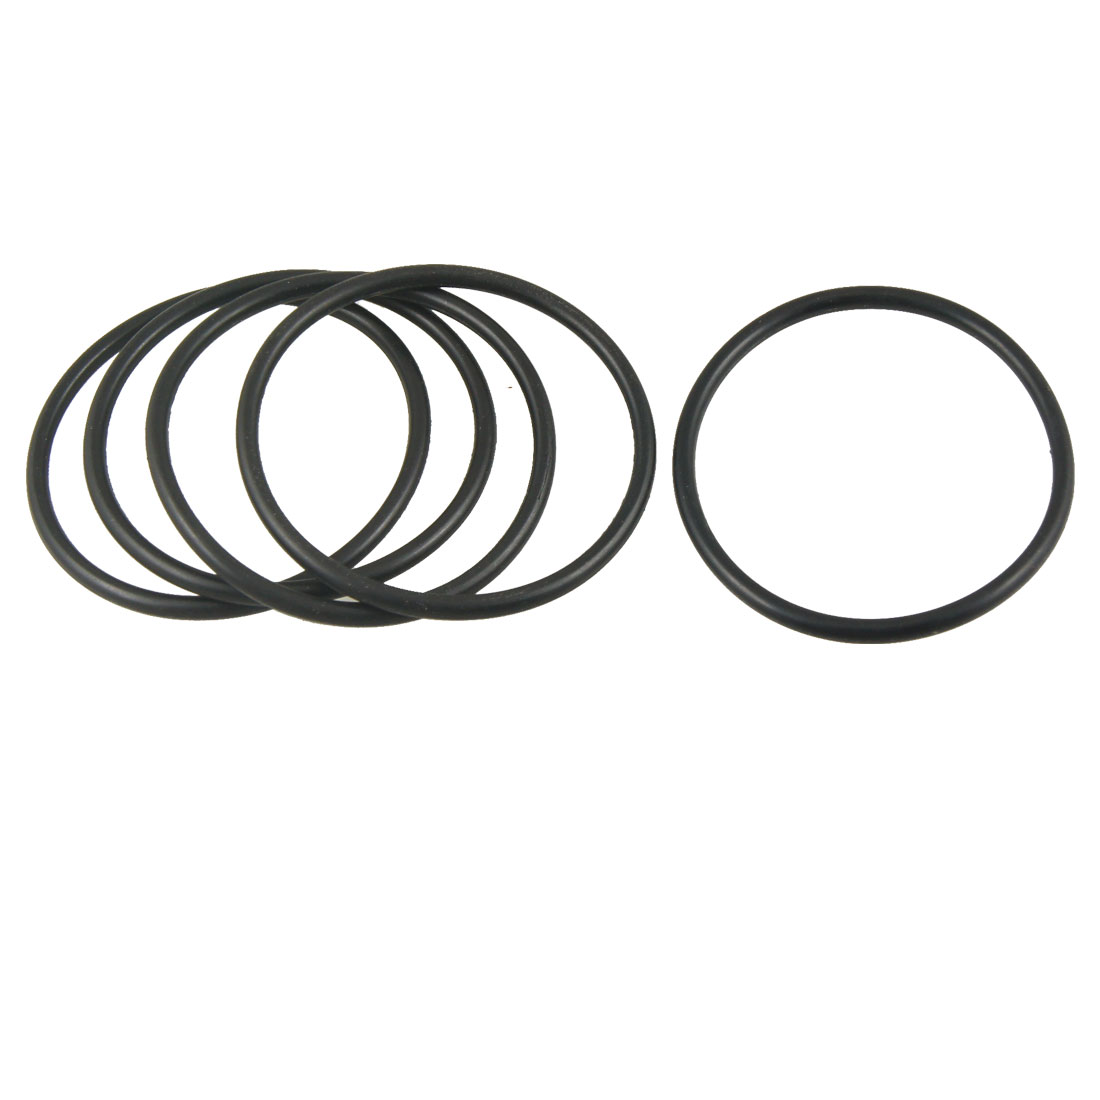 Uxcell 5 Pcs 3.5Mm T Rubber Sealing Oil Filter O Rings